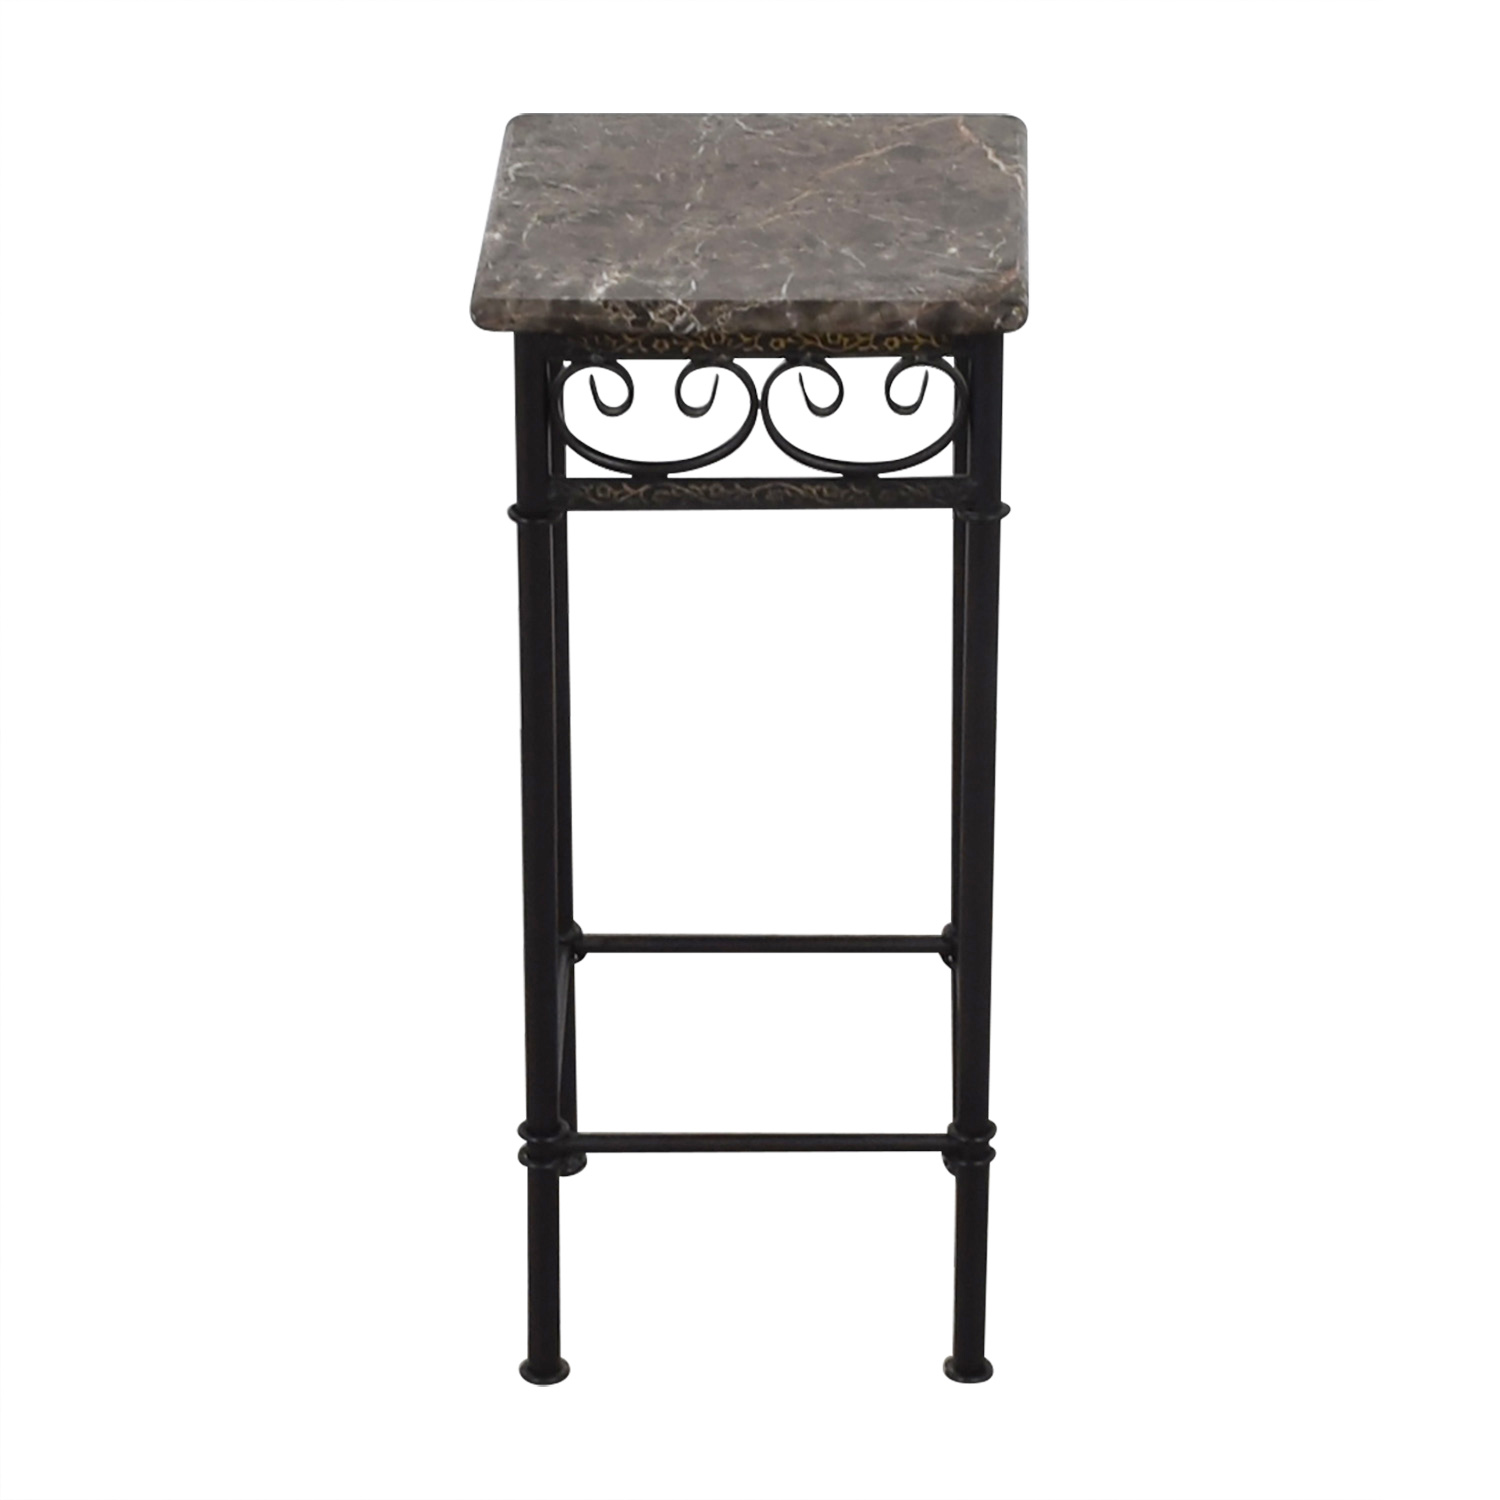 off faux marble with black metal base accent table tables used counter height bar cream colored nightstand grey dining room chairs patio depot glass top end garden storage